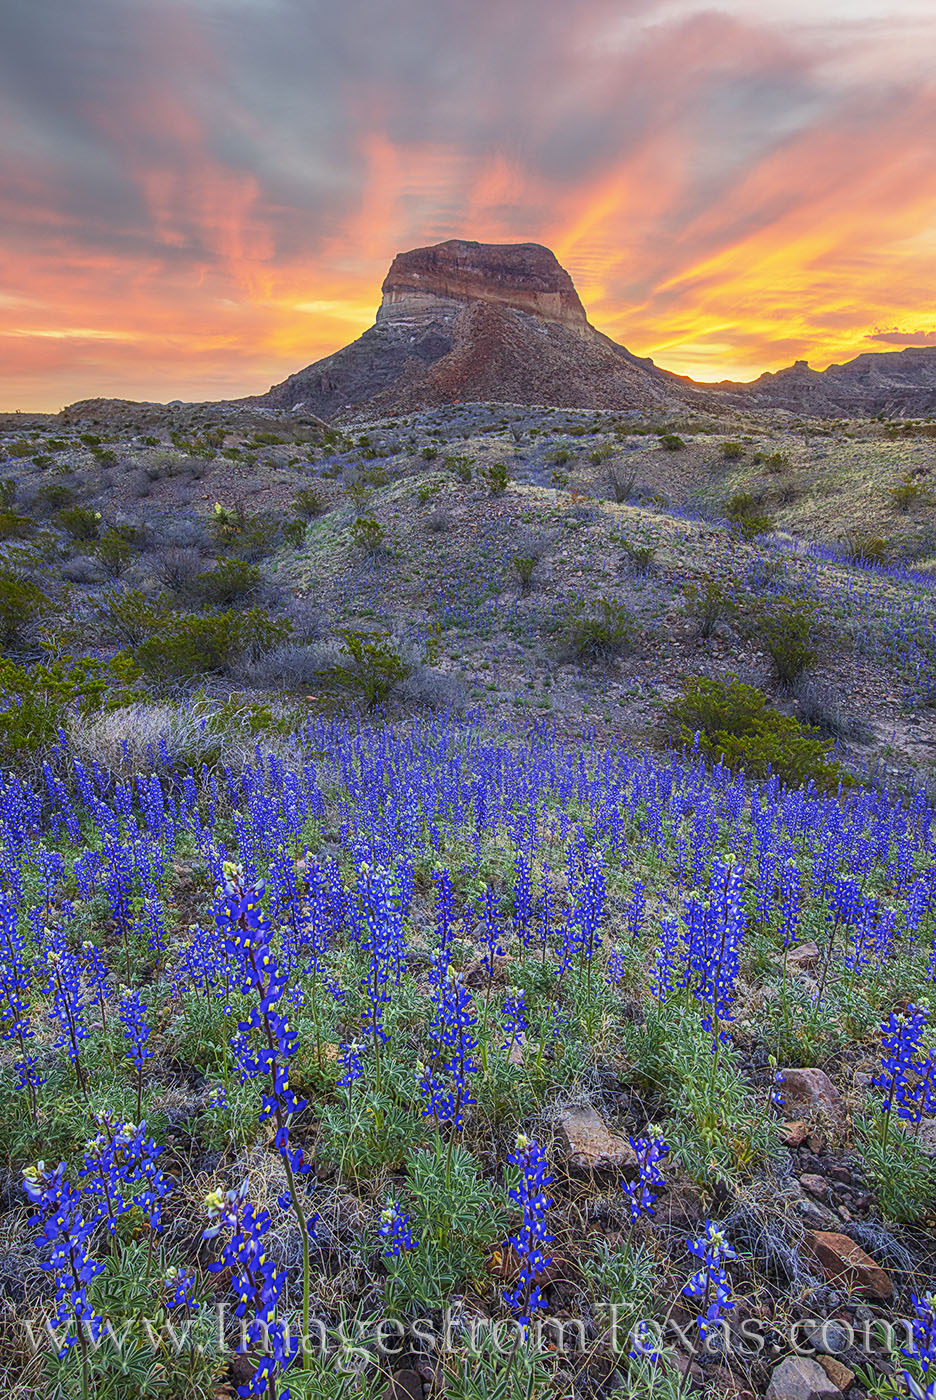 One of my favorite places in Big Bend to photograph bluebonnets is the area surrounding Cerro Castellan. The landscape seems...